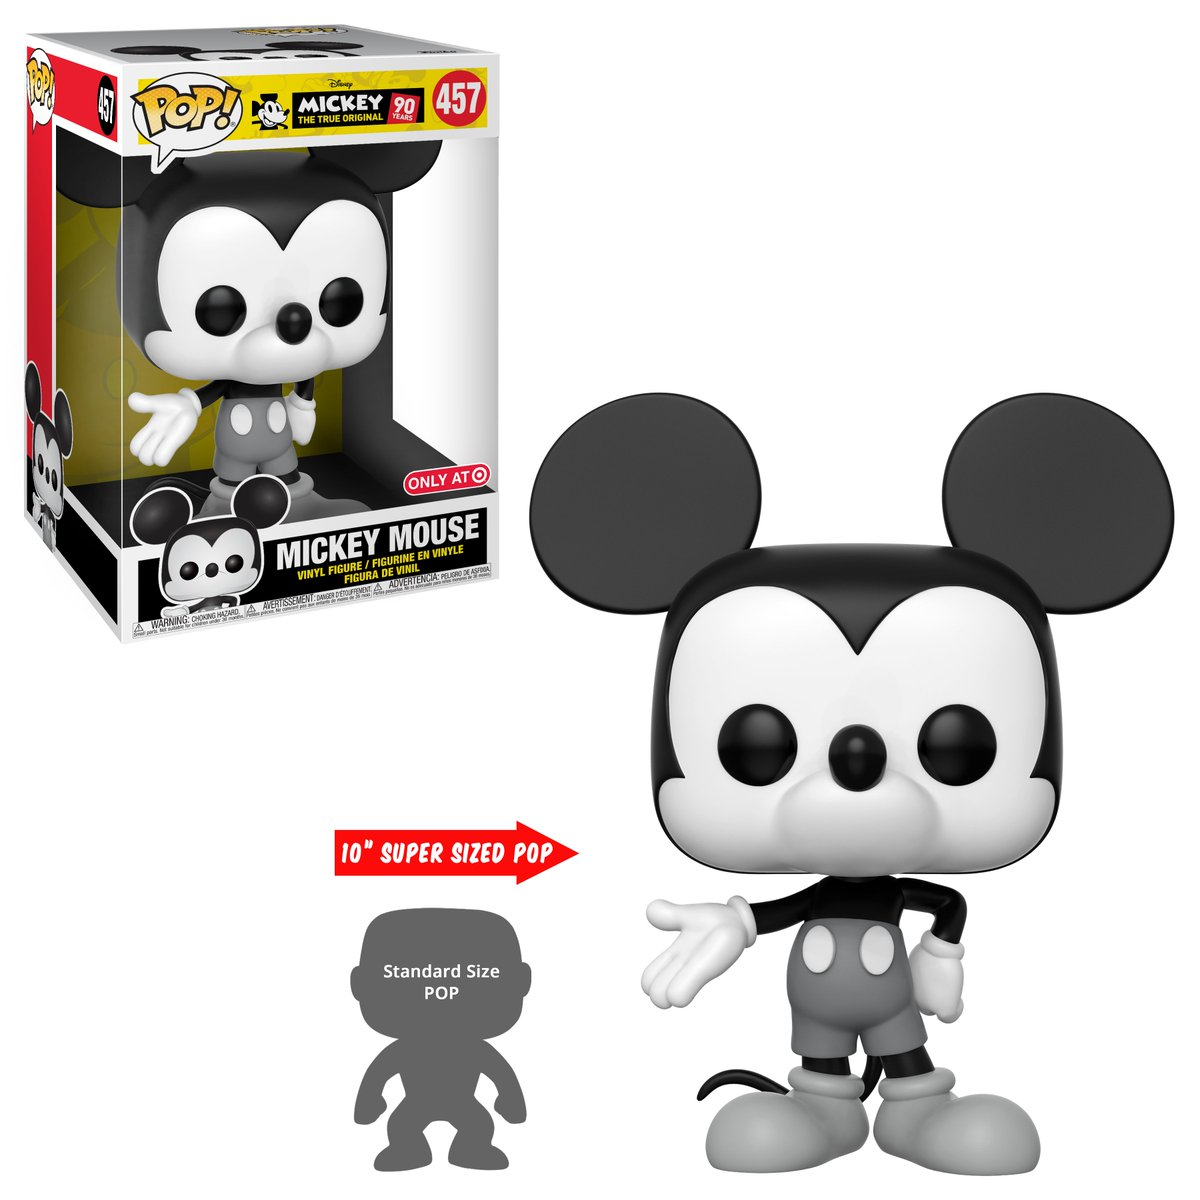 Replying to @OriginalFunko: RT & follow @OriginalFunko for the chance to win a @Target exclusive 10-inch Mickey Mouse Pop!